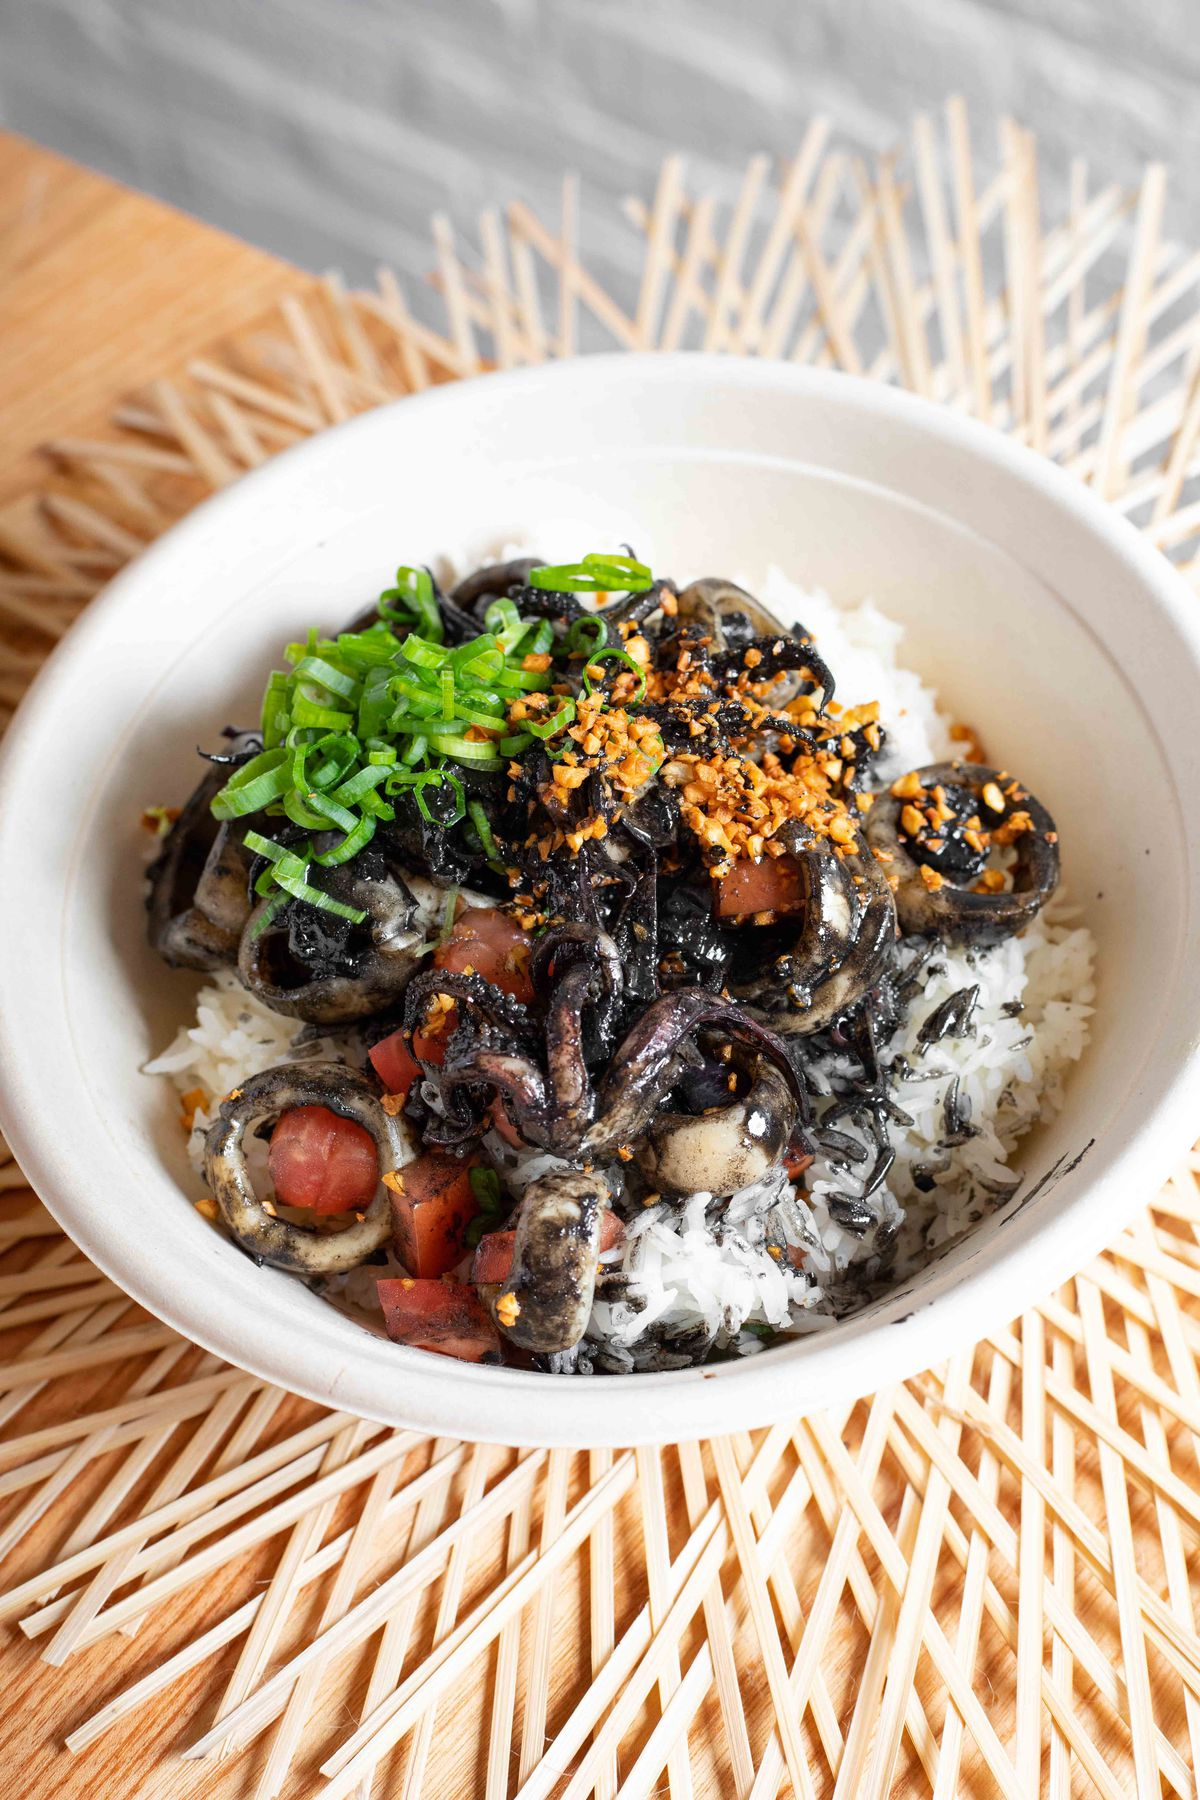 Squid adobo, black ink sauce, and toasted garlic over rice in a takeout bowl